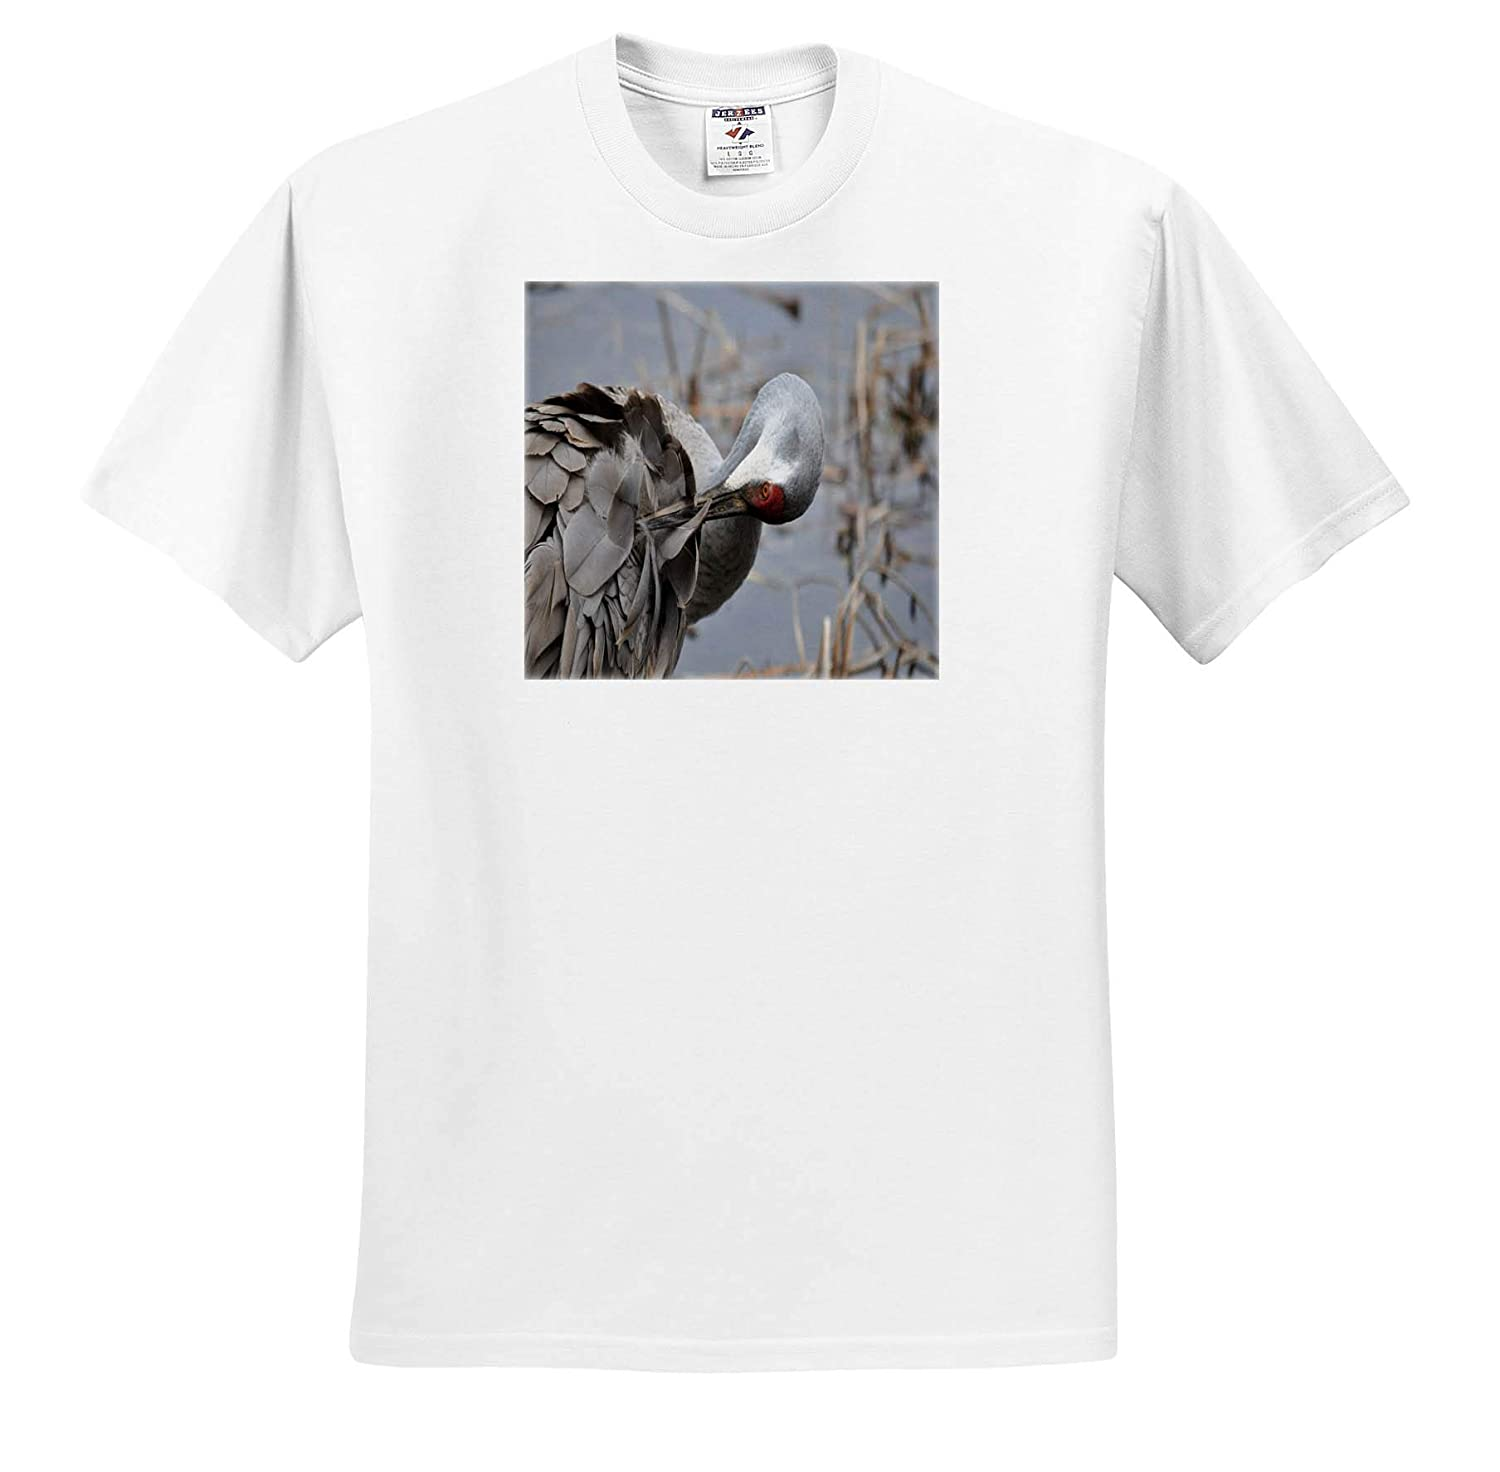 ts/_314295 3dRose Dreamscapes by Leslie Adult T-Shirt XL Birds Sandhill Crane Grooming his Feathers